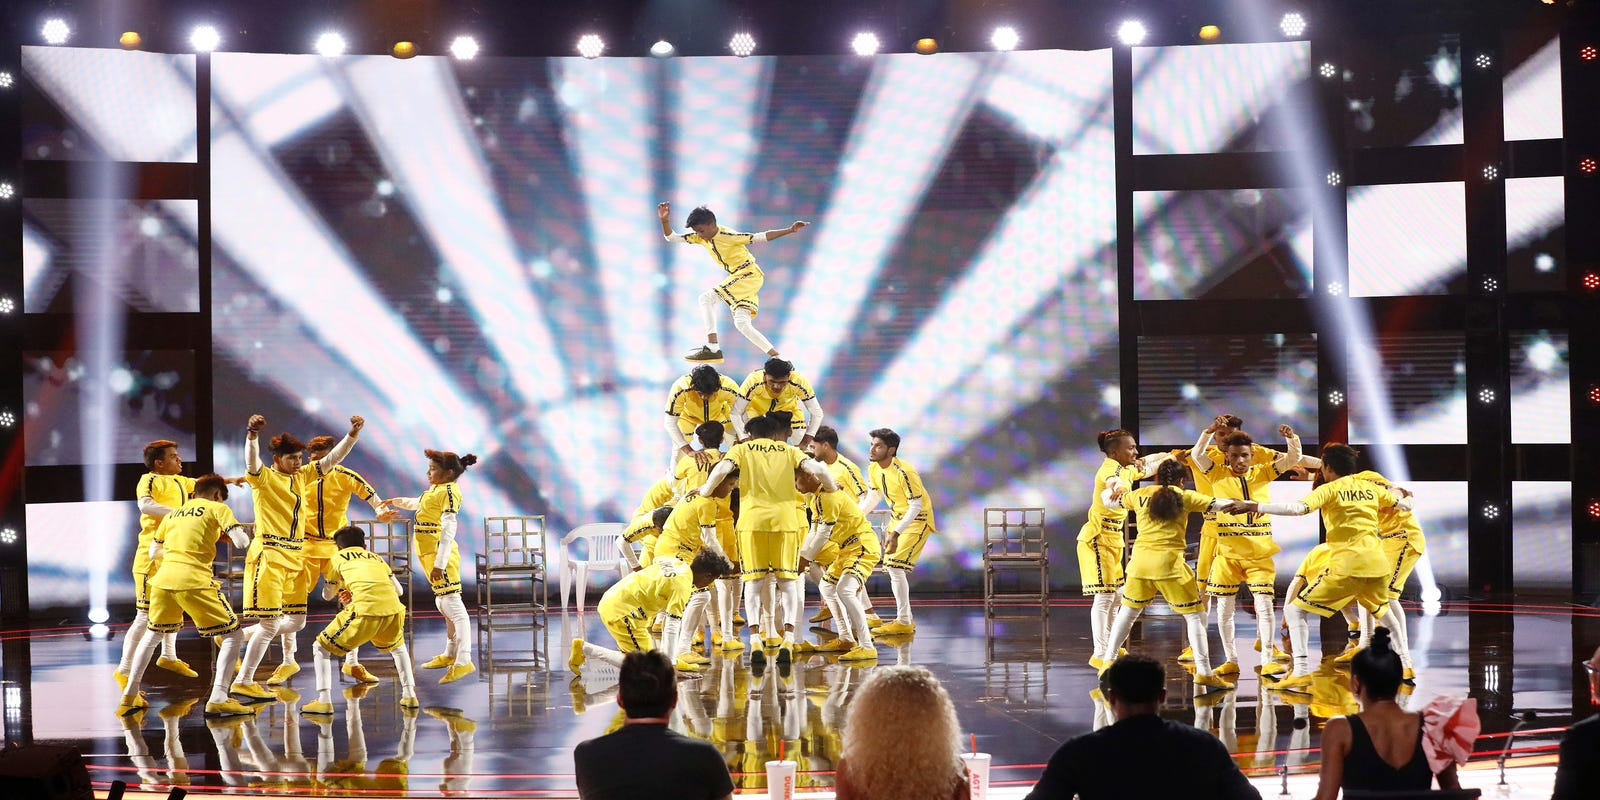 Agt Acrobat Group V Unbeatable Dedicates Act To Fallen Crew Member